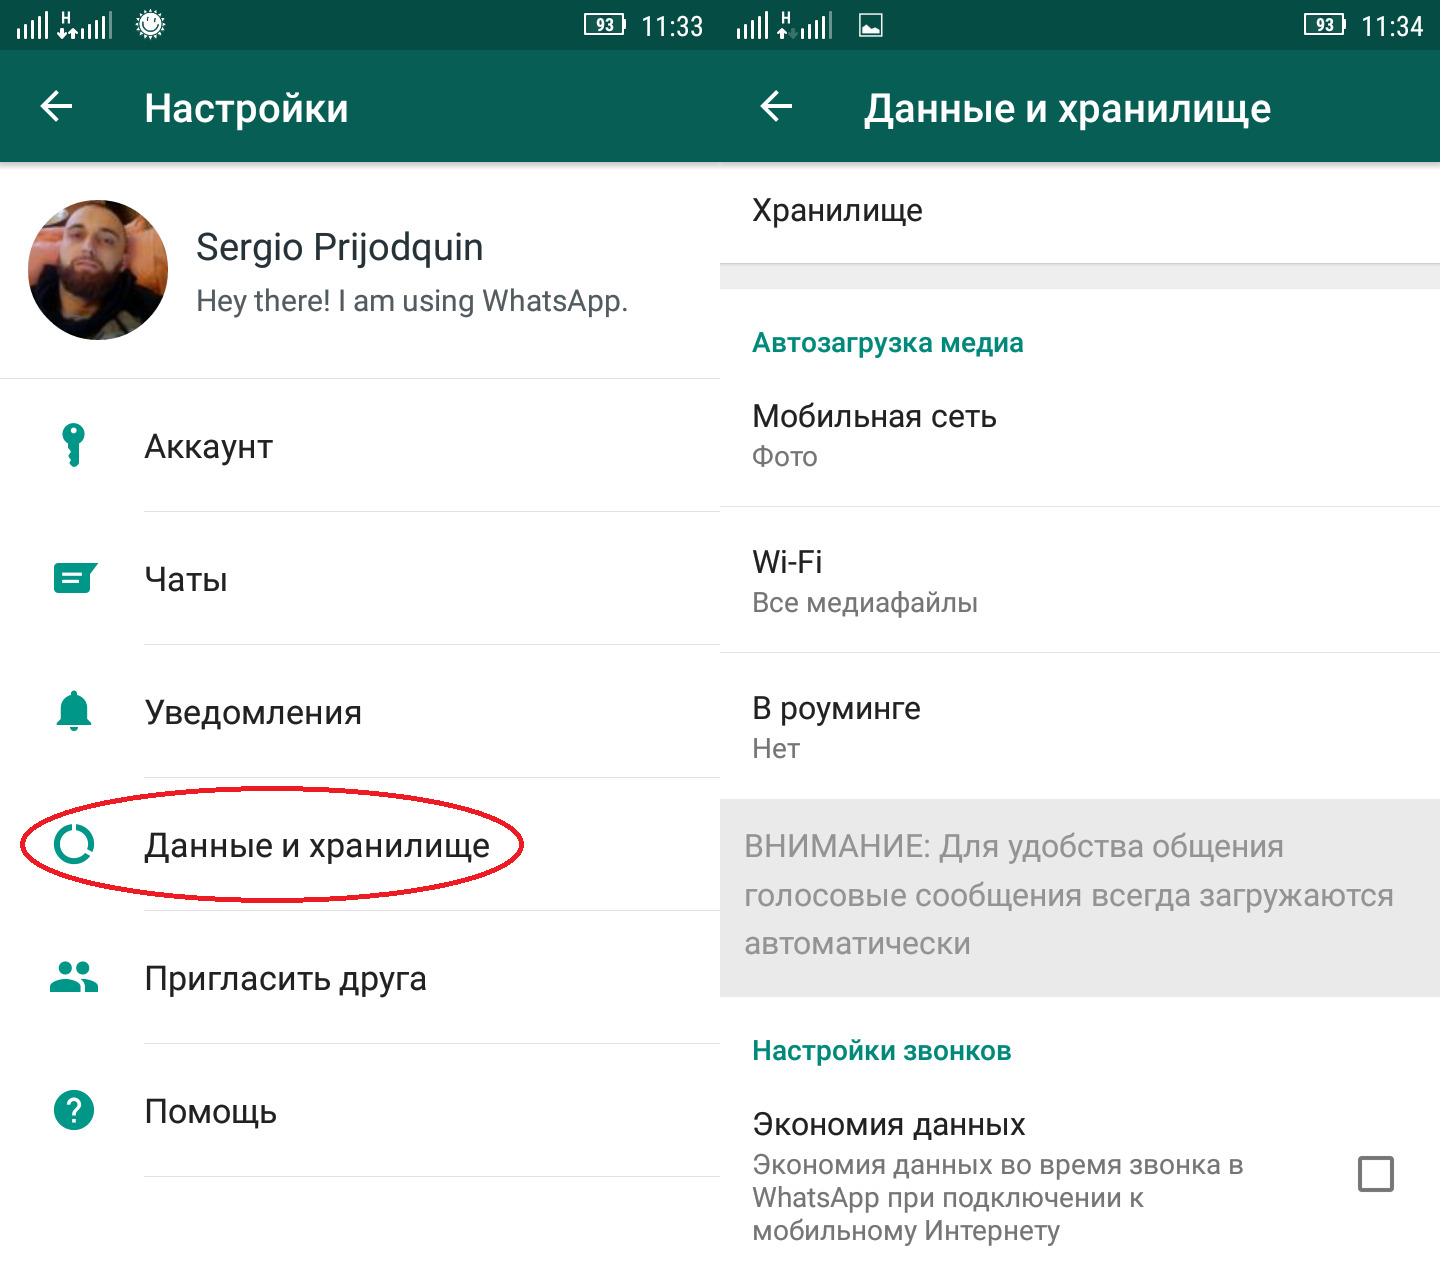 Картинка 1 Как скрывать фото в галерее изображений WhatsApp